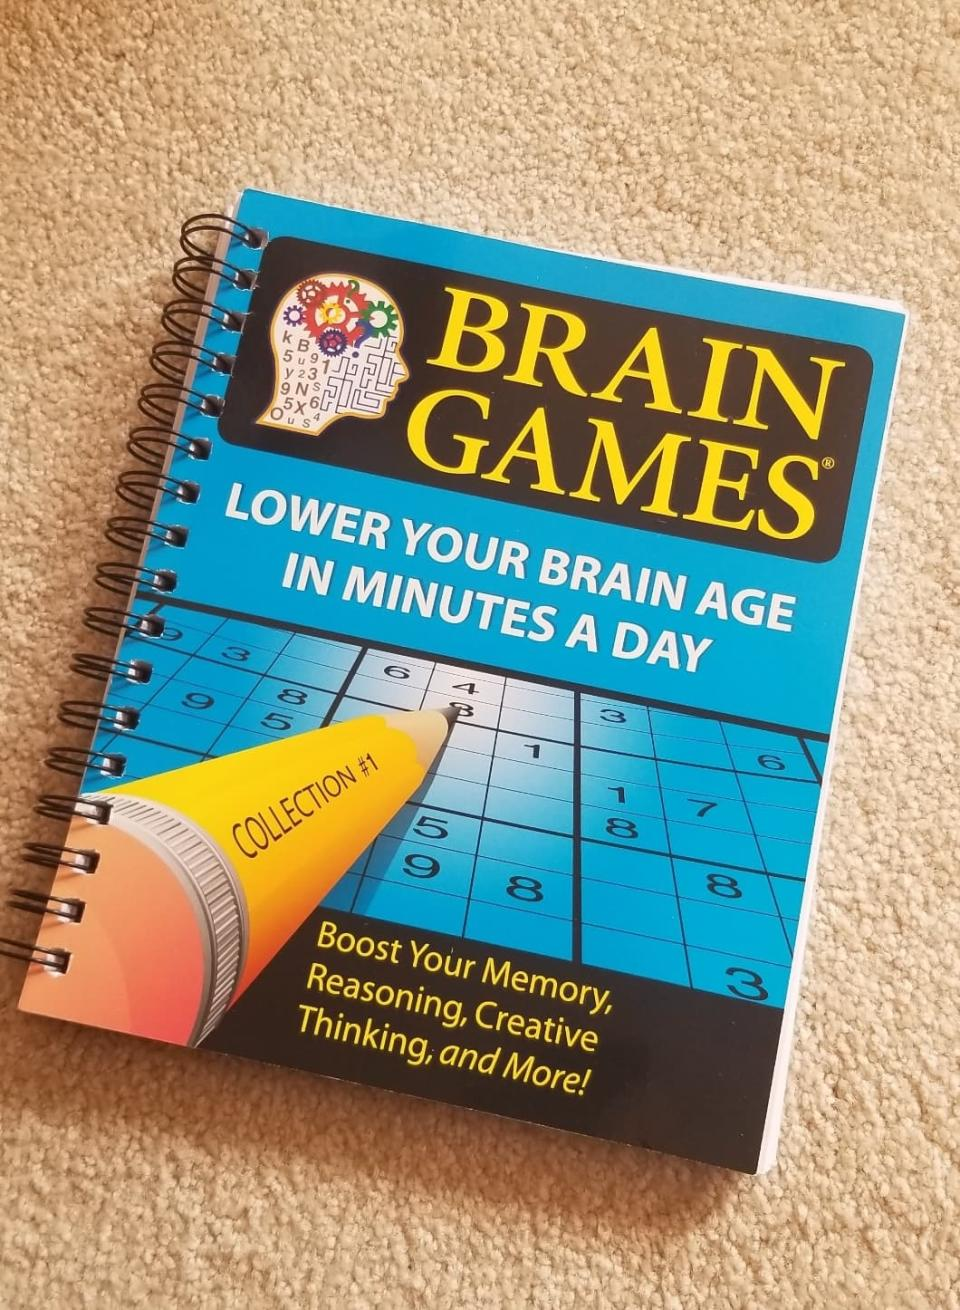 Brain Games #1: Lower Your Brain Age in Minutes a Day. Image via Sarah Rohoman.